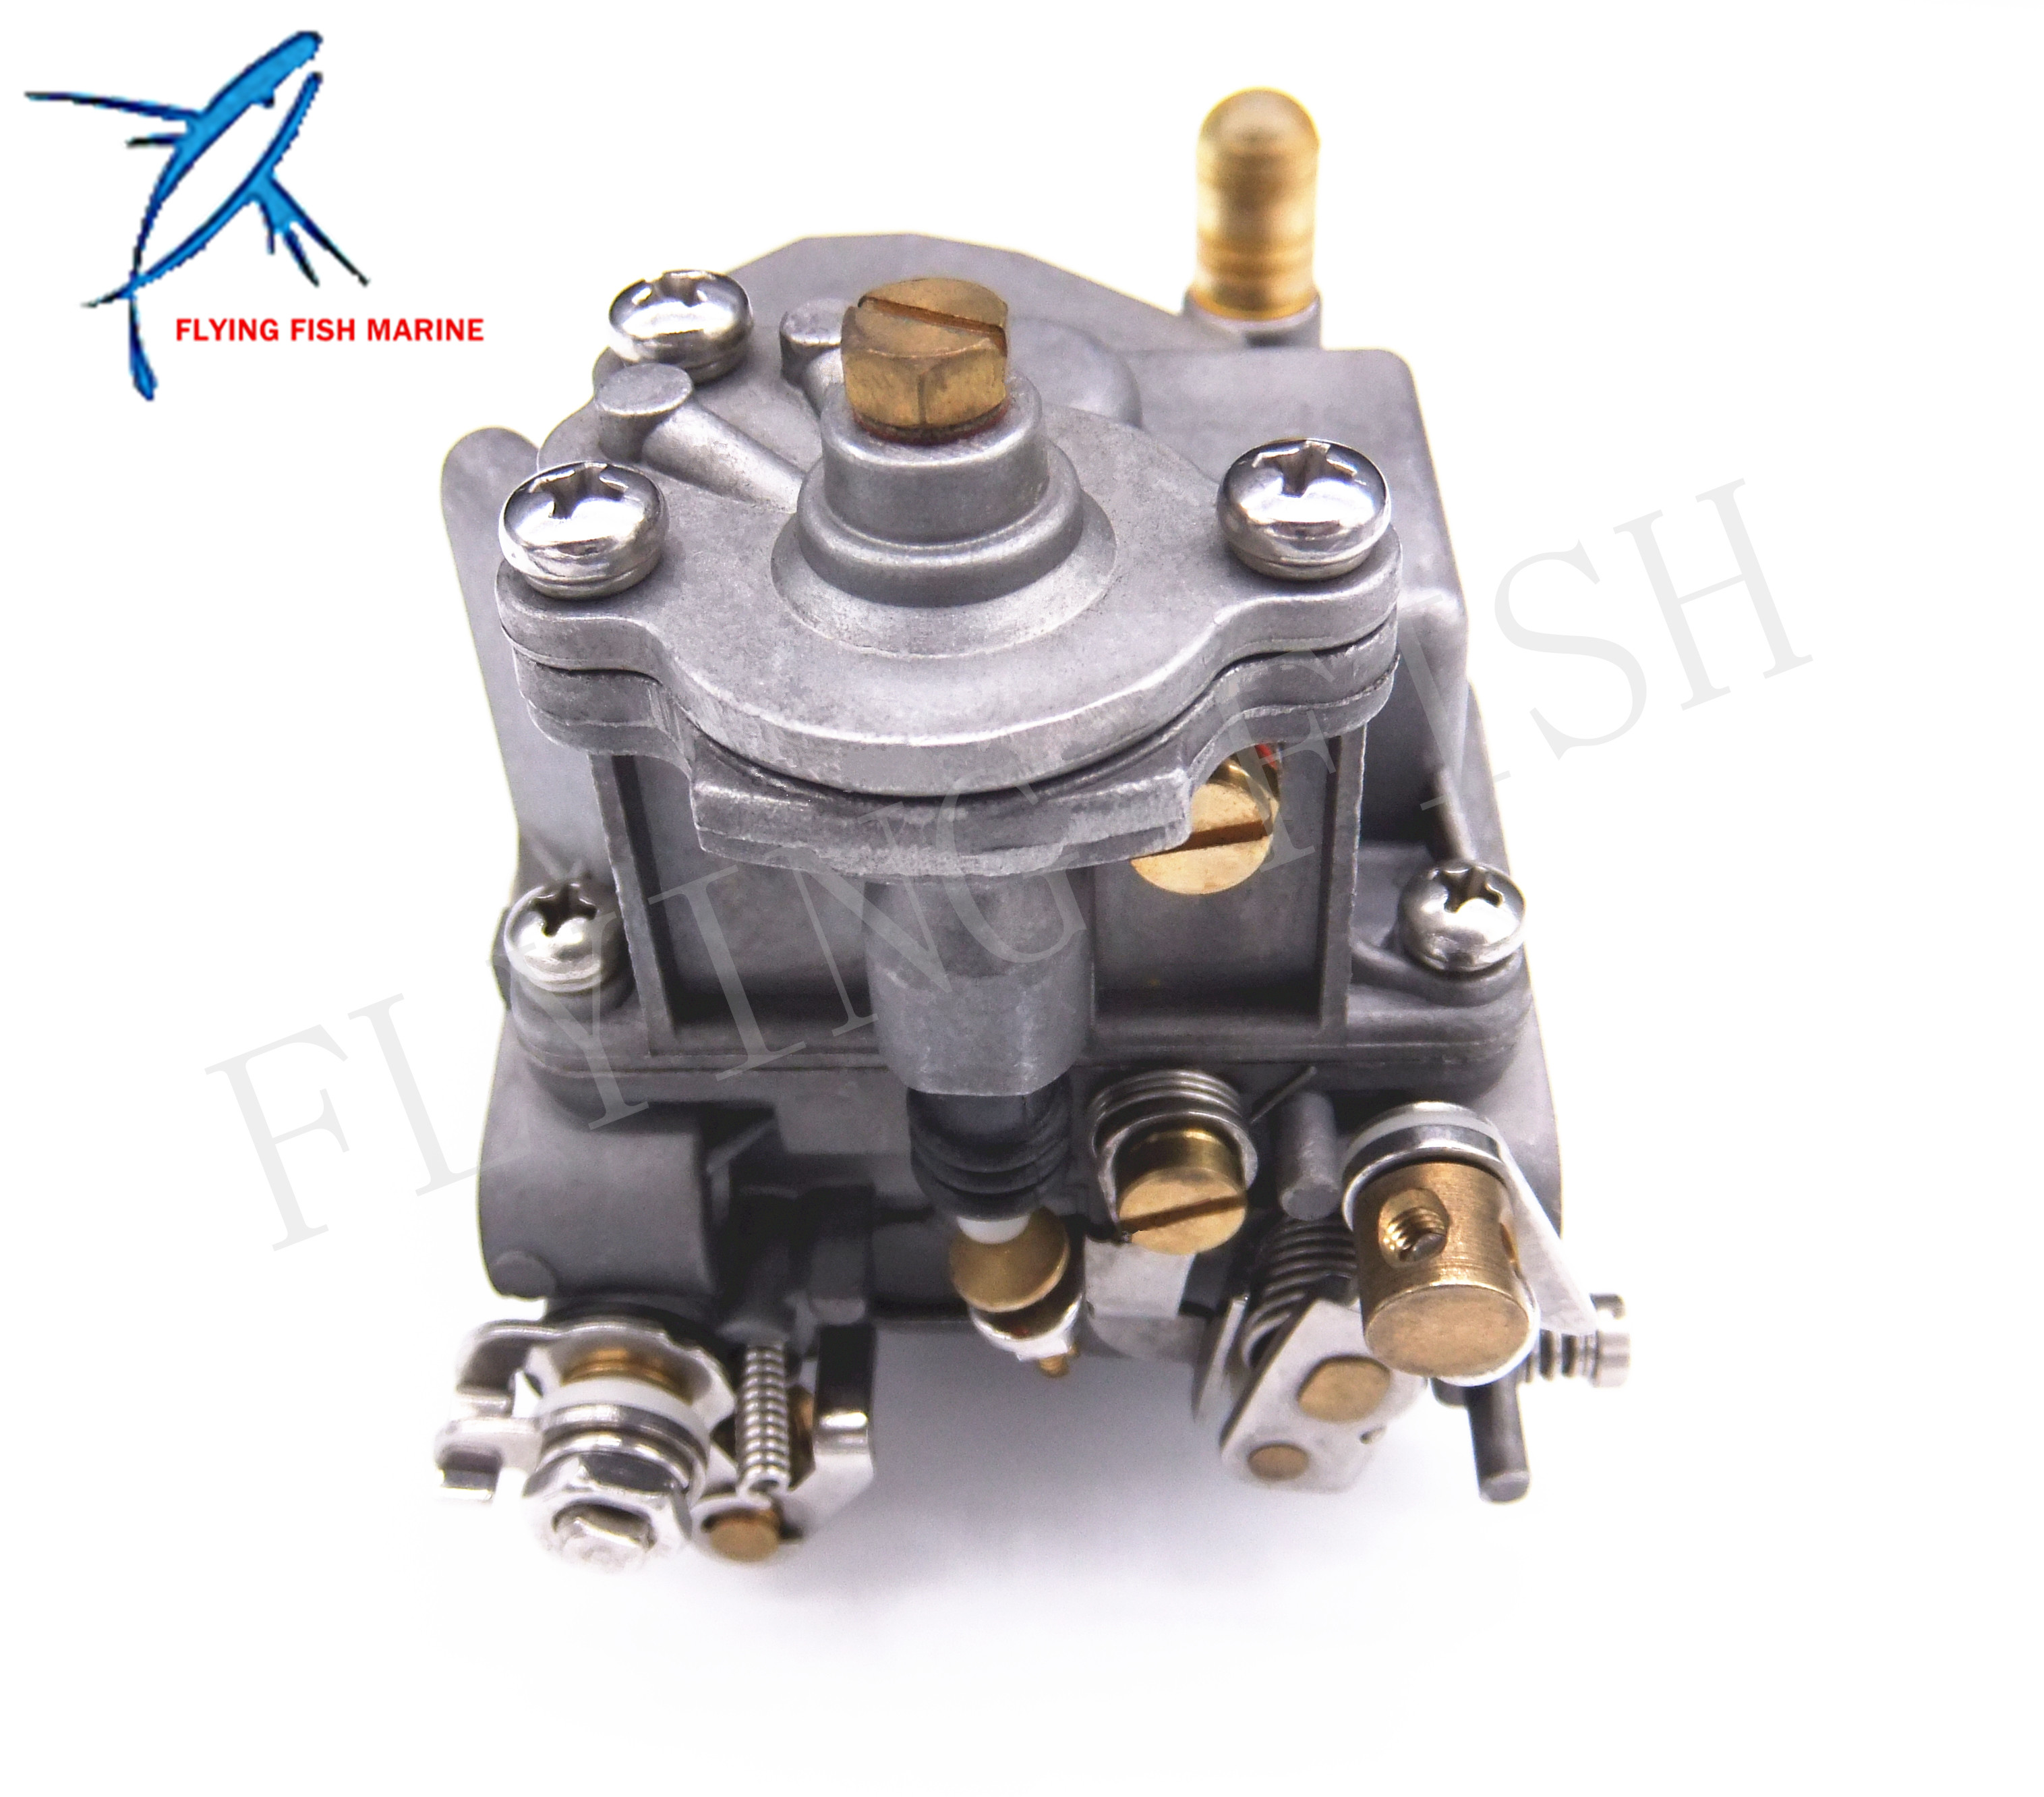 Outboard Engine 66M-14301-12-00 Carburetor Assy for Yamaha 4-stroke 15hp F15 Electric Start Boat Motor Free Shipping